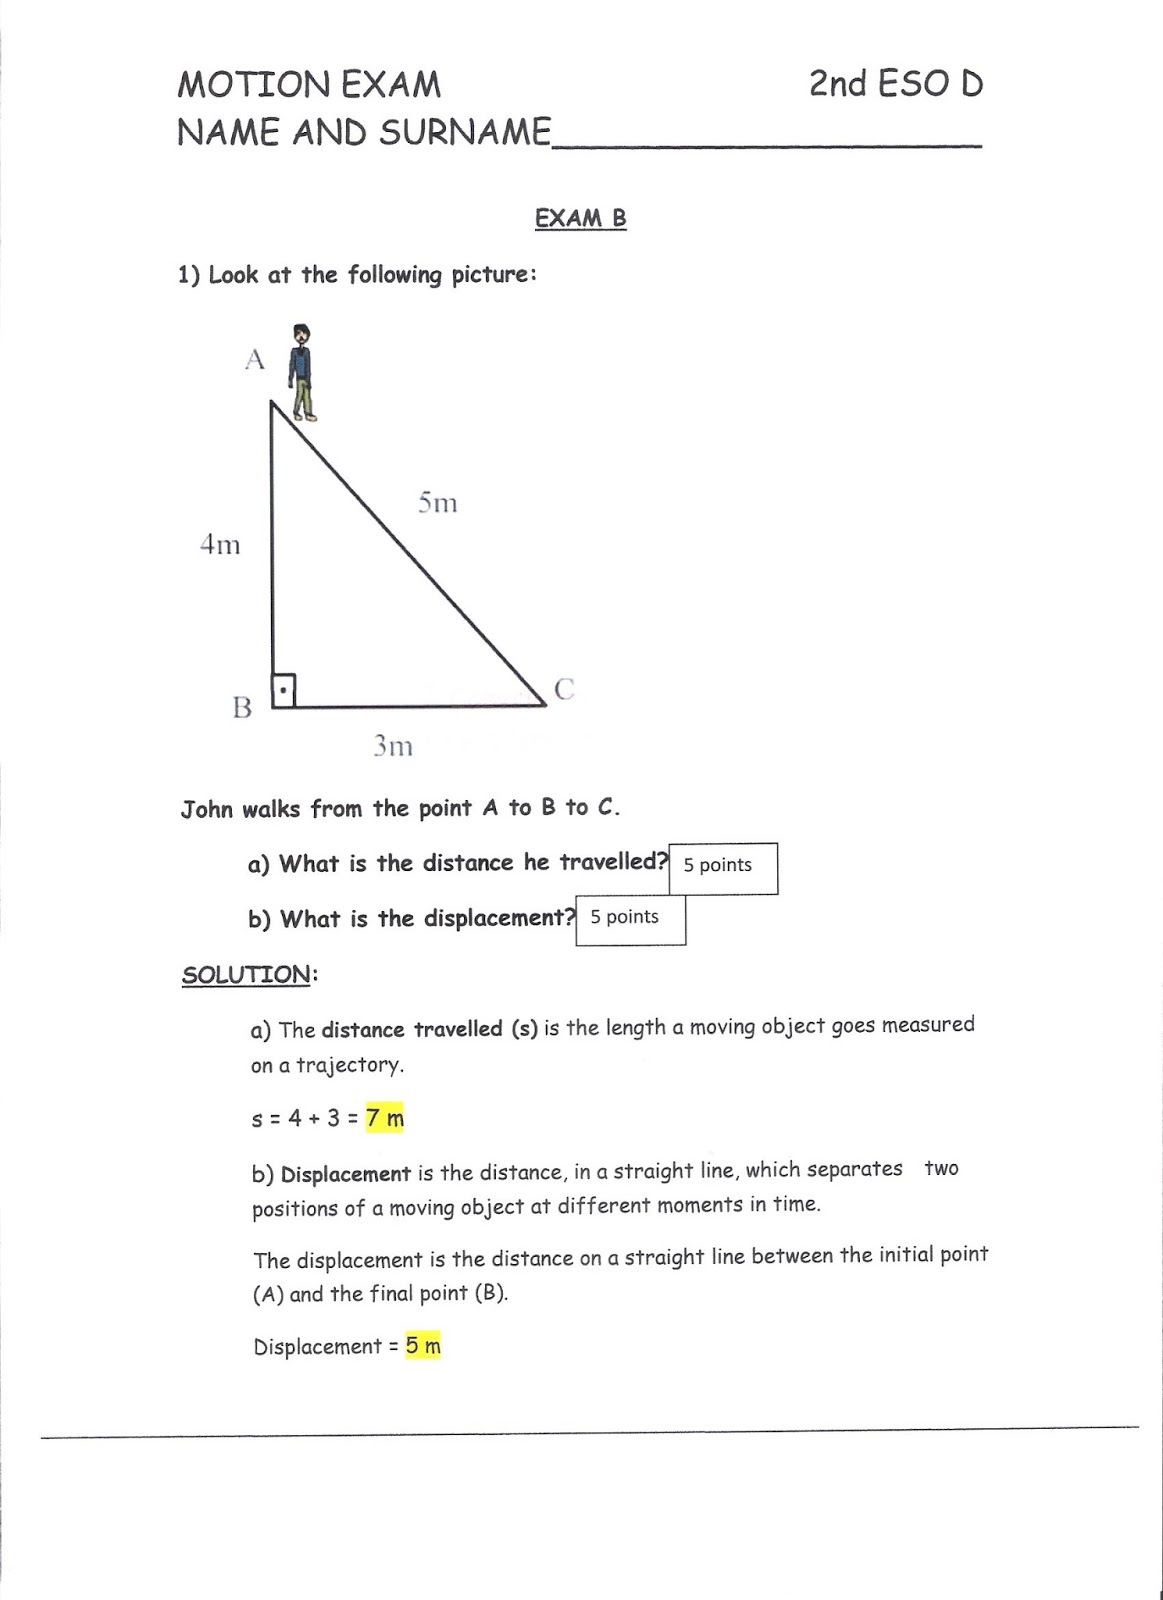 Ies Gabriel Cisneros 2nd Eso D Motion Exam With Answers